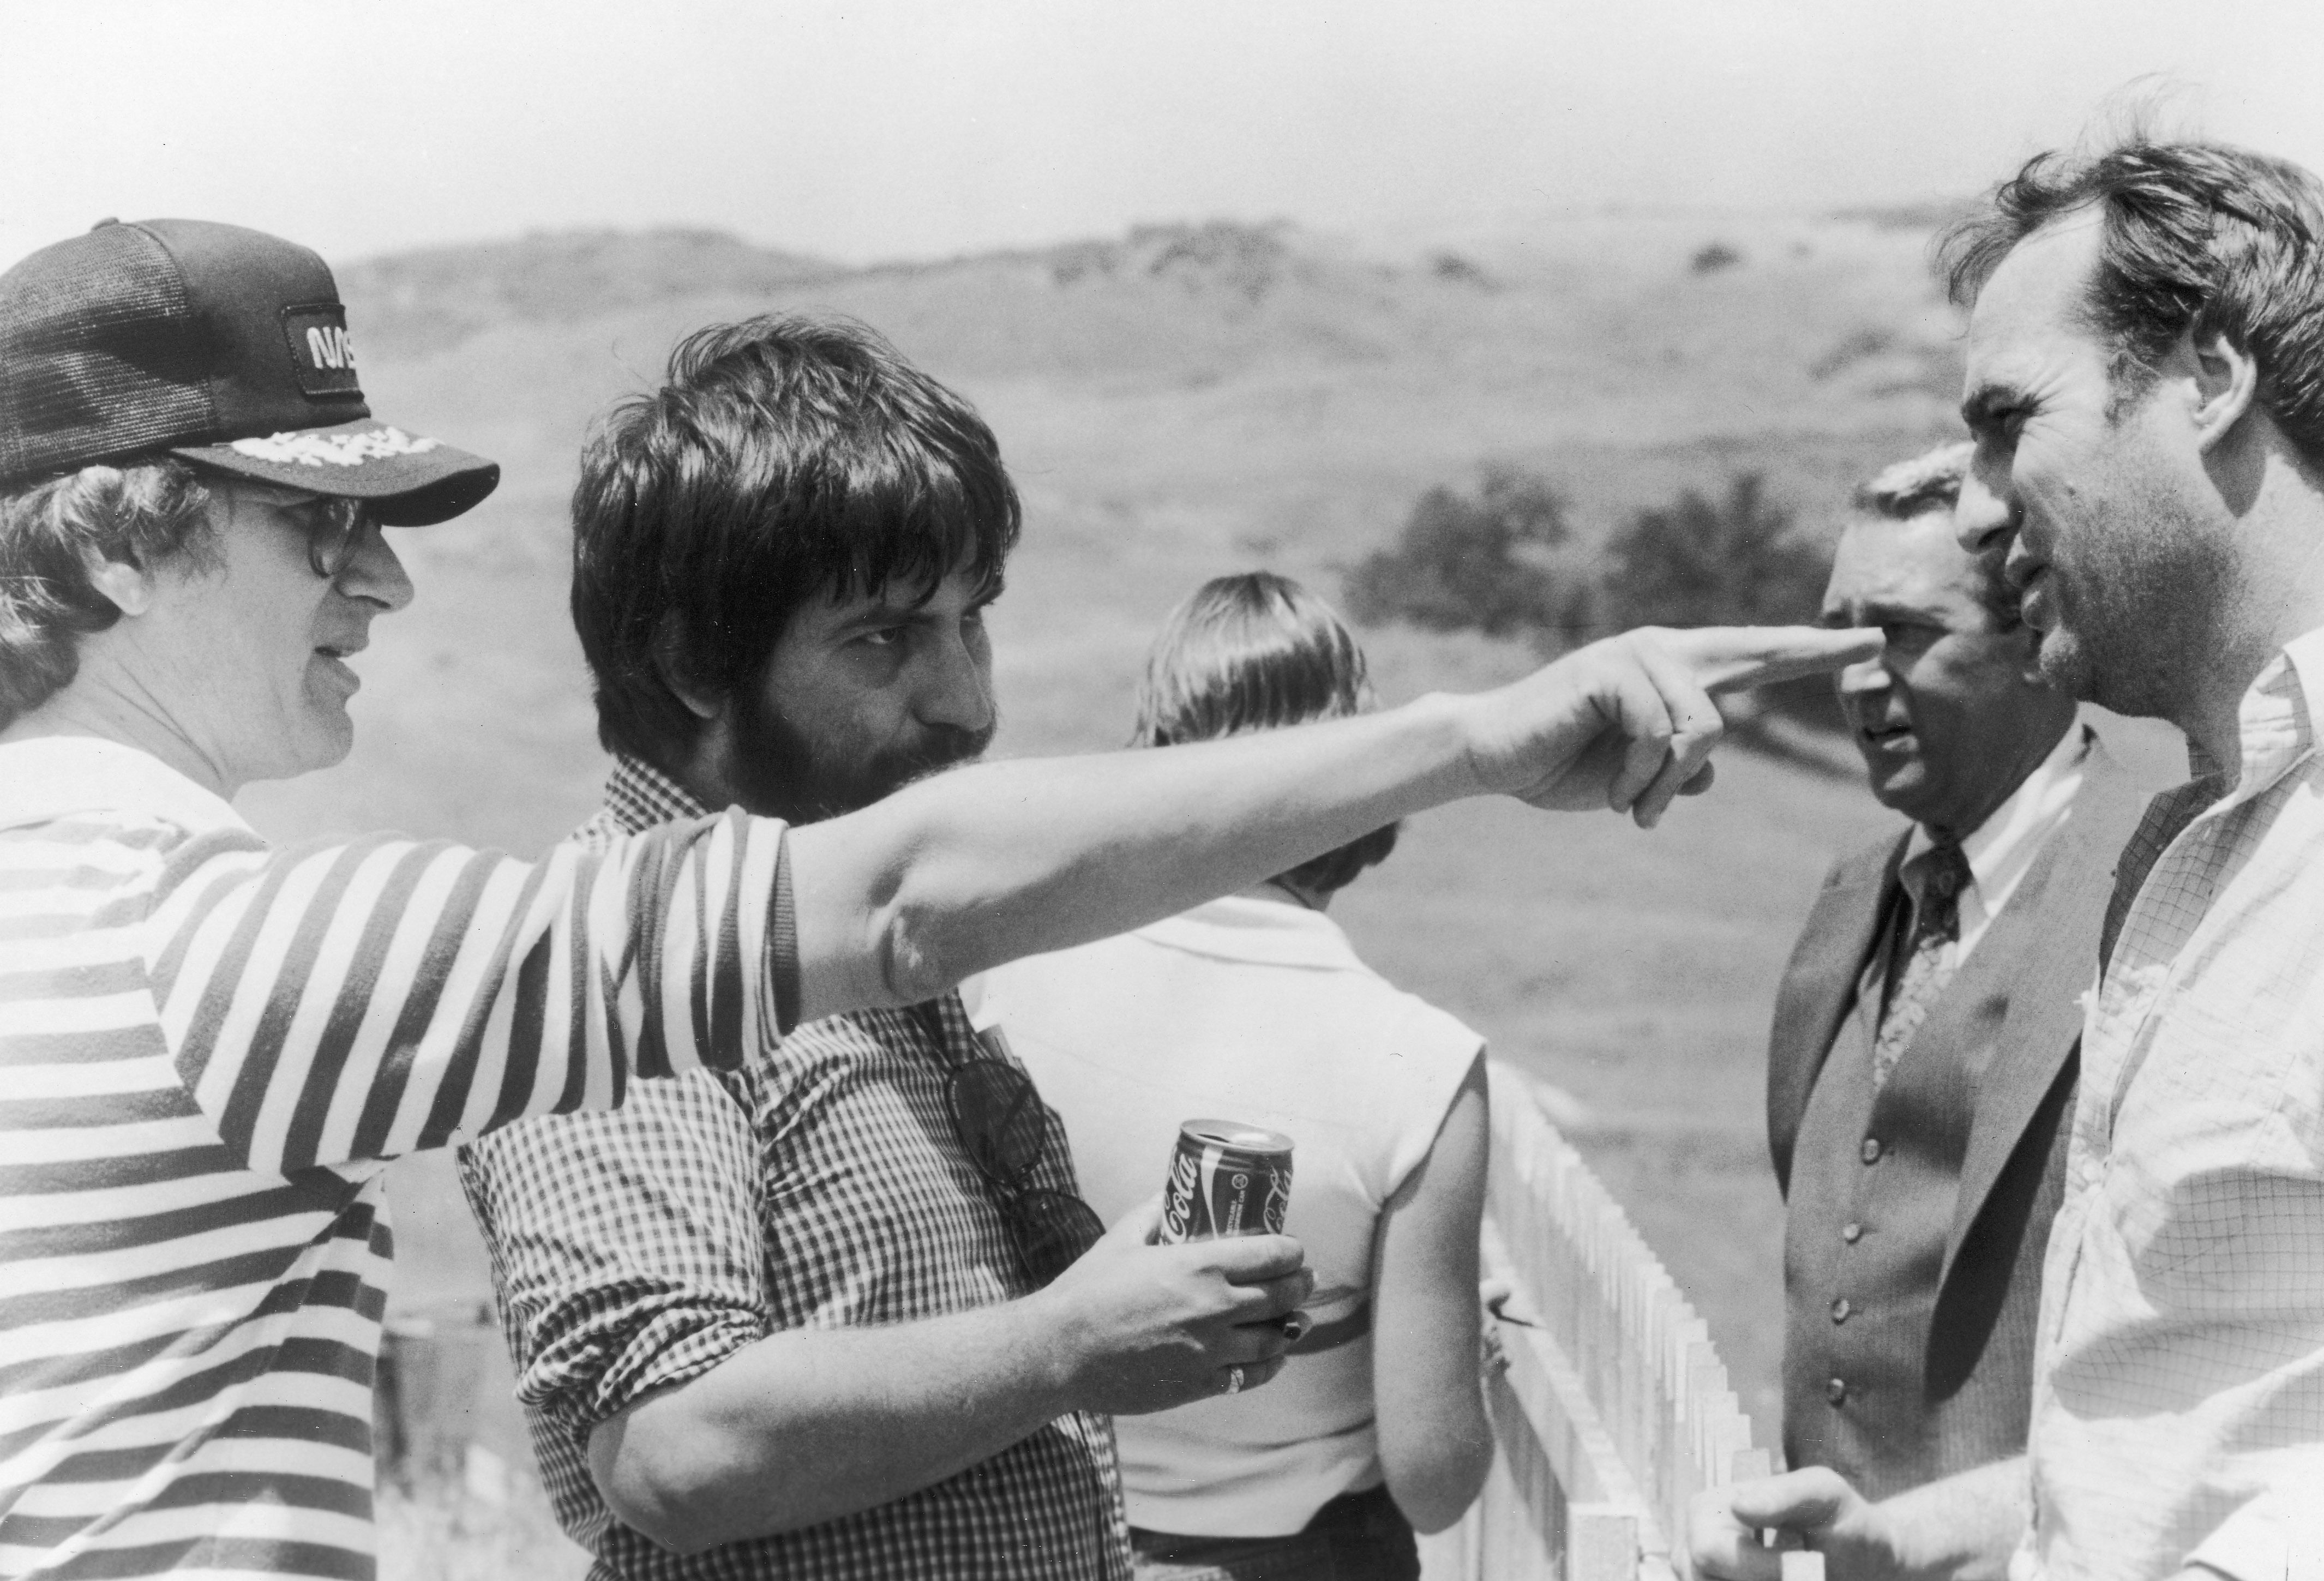 Horror Hits Home: Producer and uncredited director Steven Spielberg (far left) on the set of 'Poltergeist' with director Tobe Hooper, actors James Karen and Craig T. Nelson in 1982.